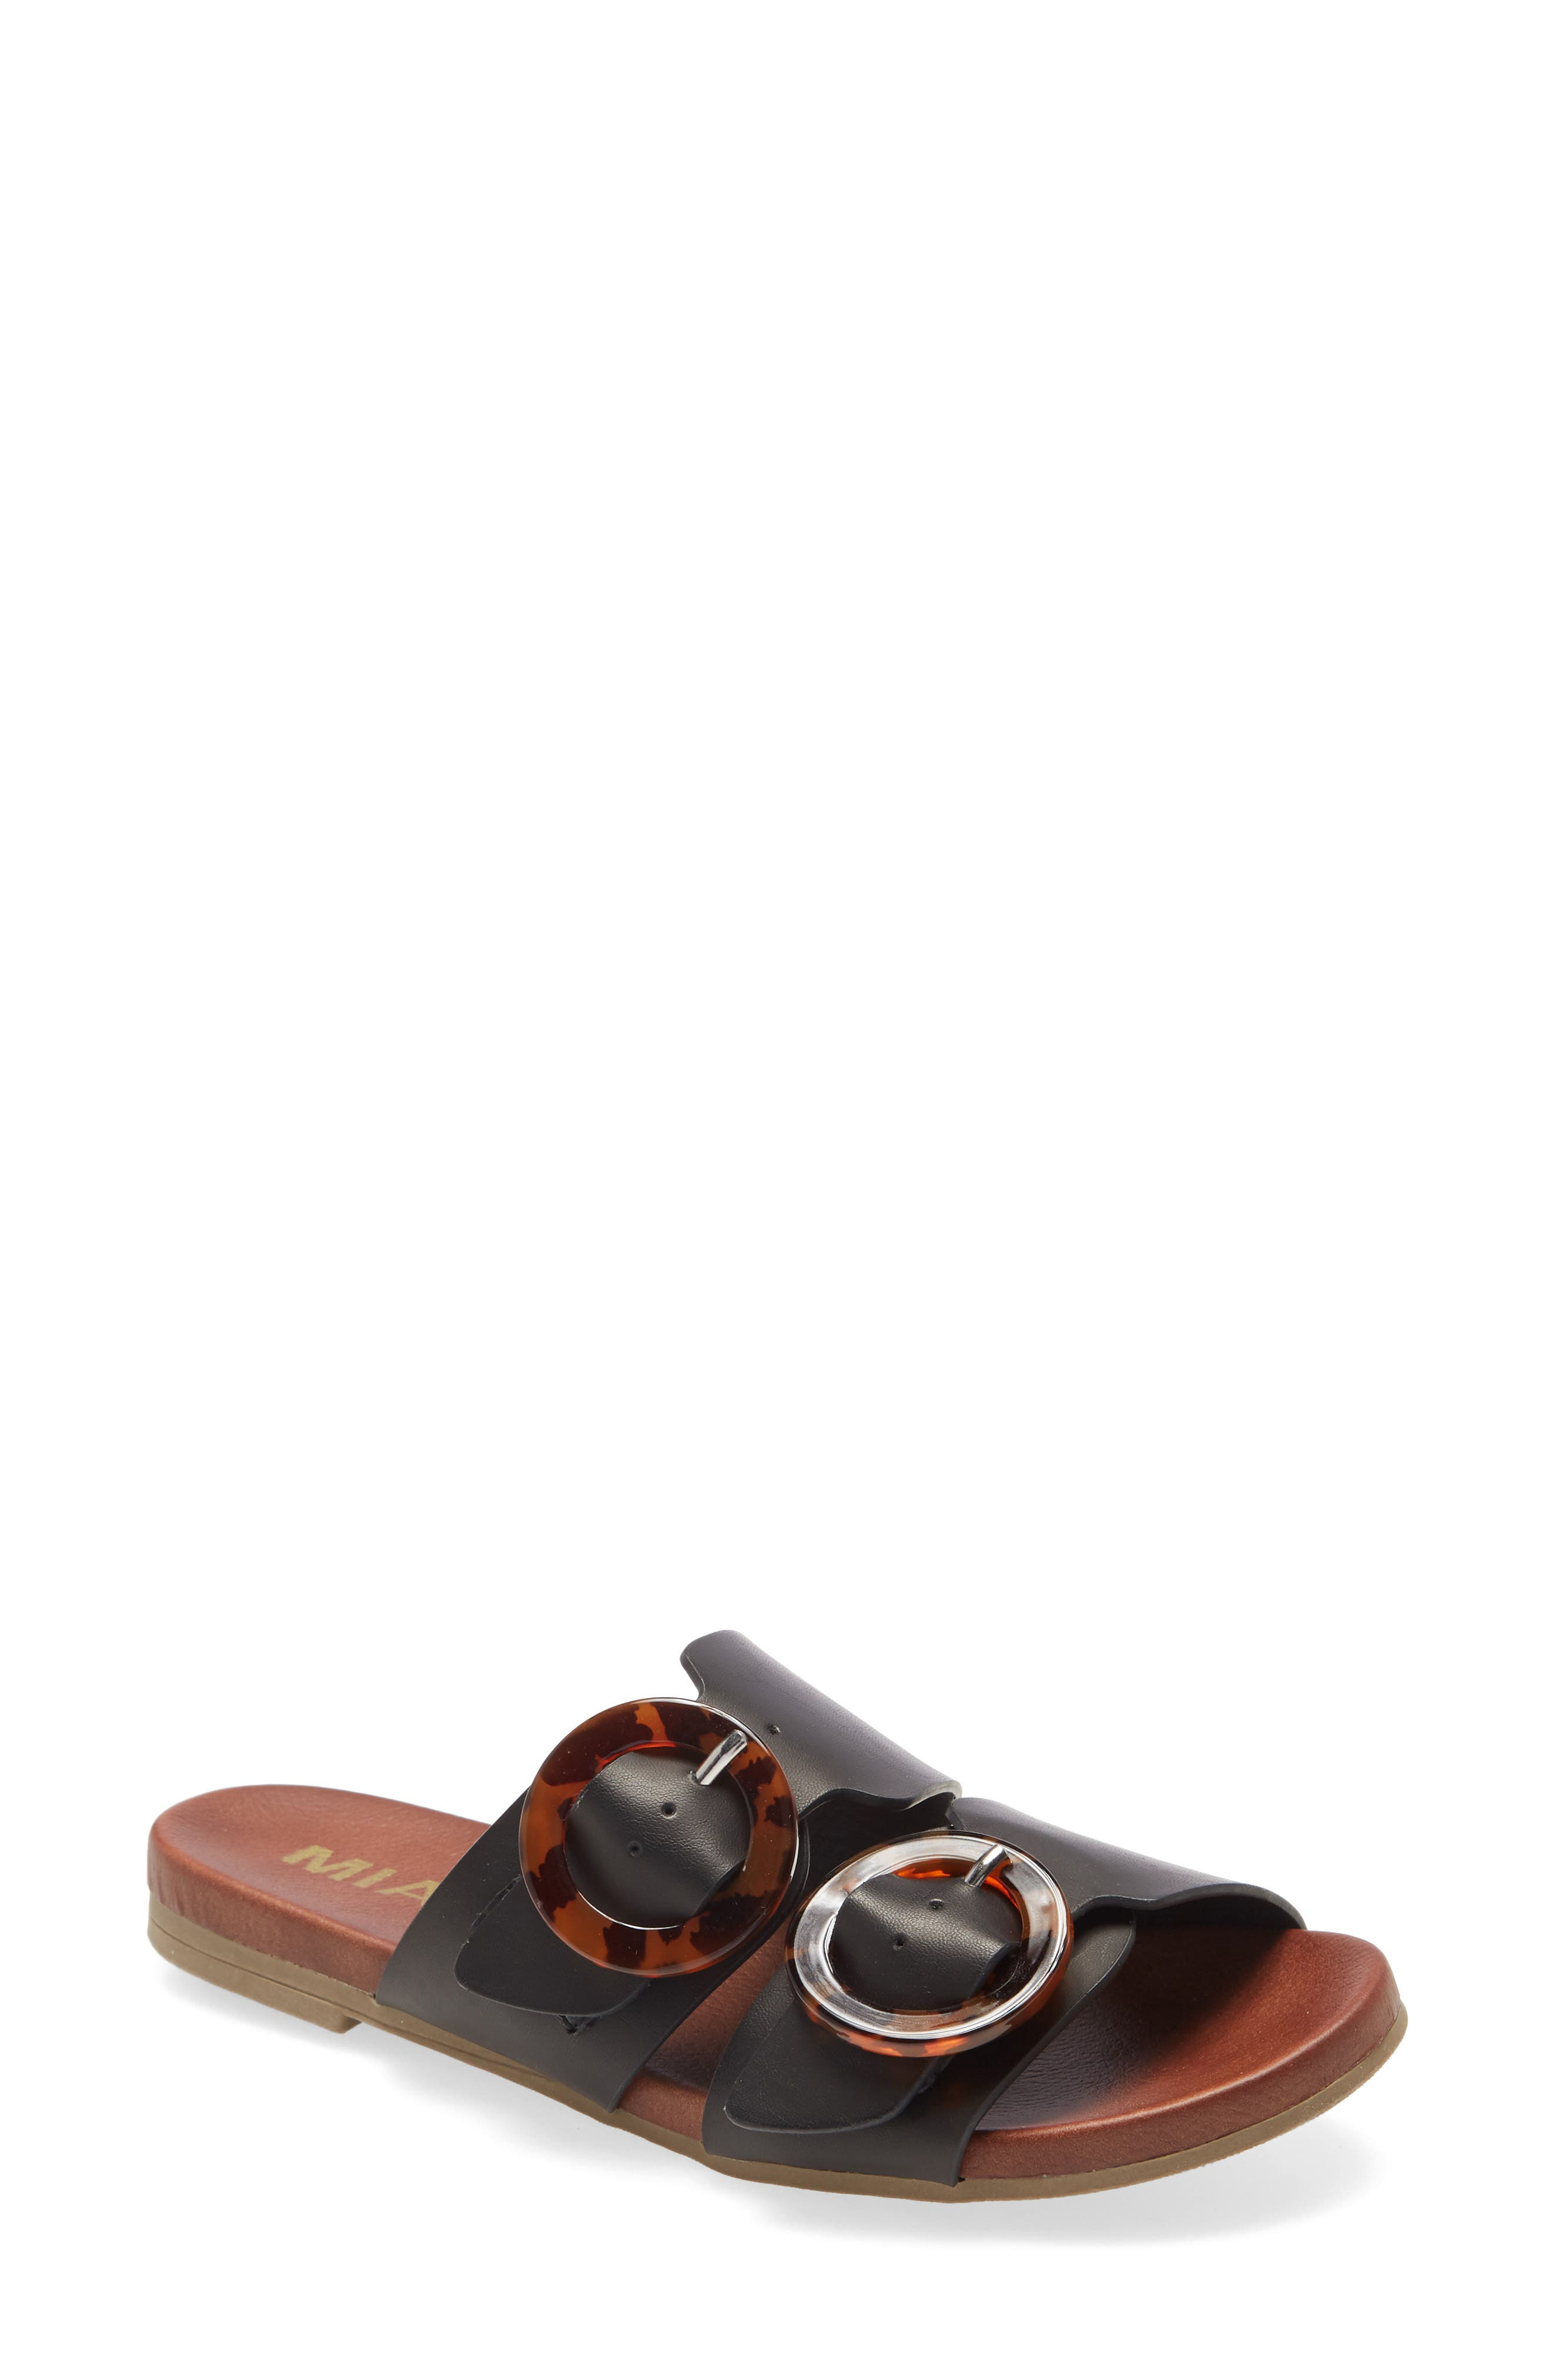 Tortoiseshell-patterned buckles embellish the dual straps of a vintage-inspired sandal set on a lightly cushioned footbed. Style Name: Mia Edina Slide Sandal (Women). Style Number: 5993421. Available in stores.